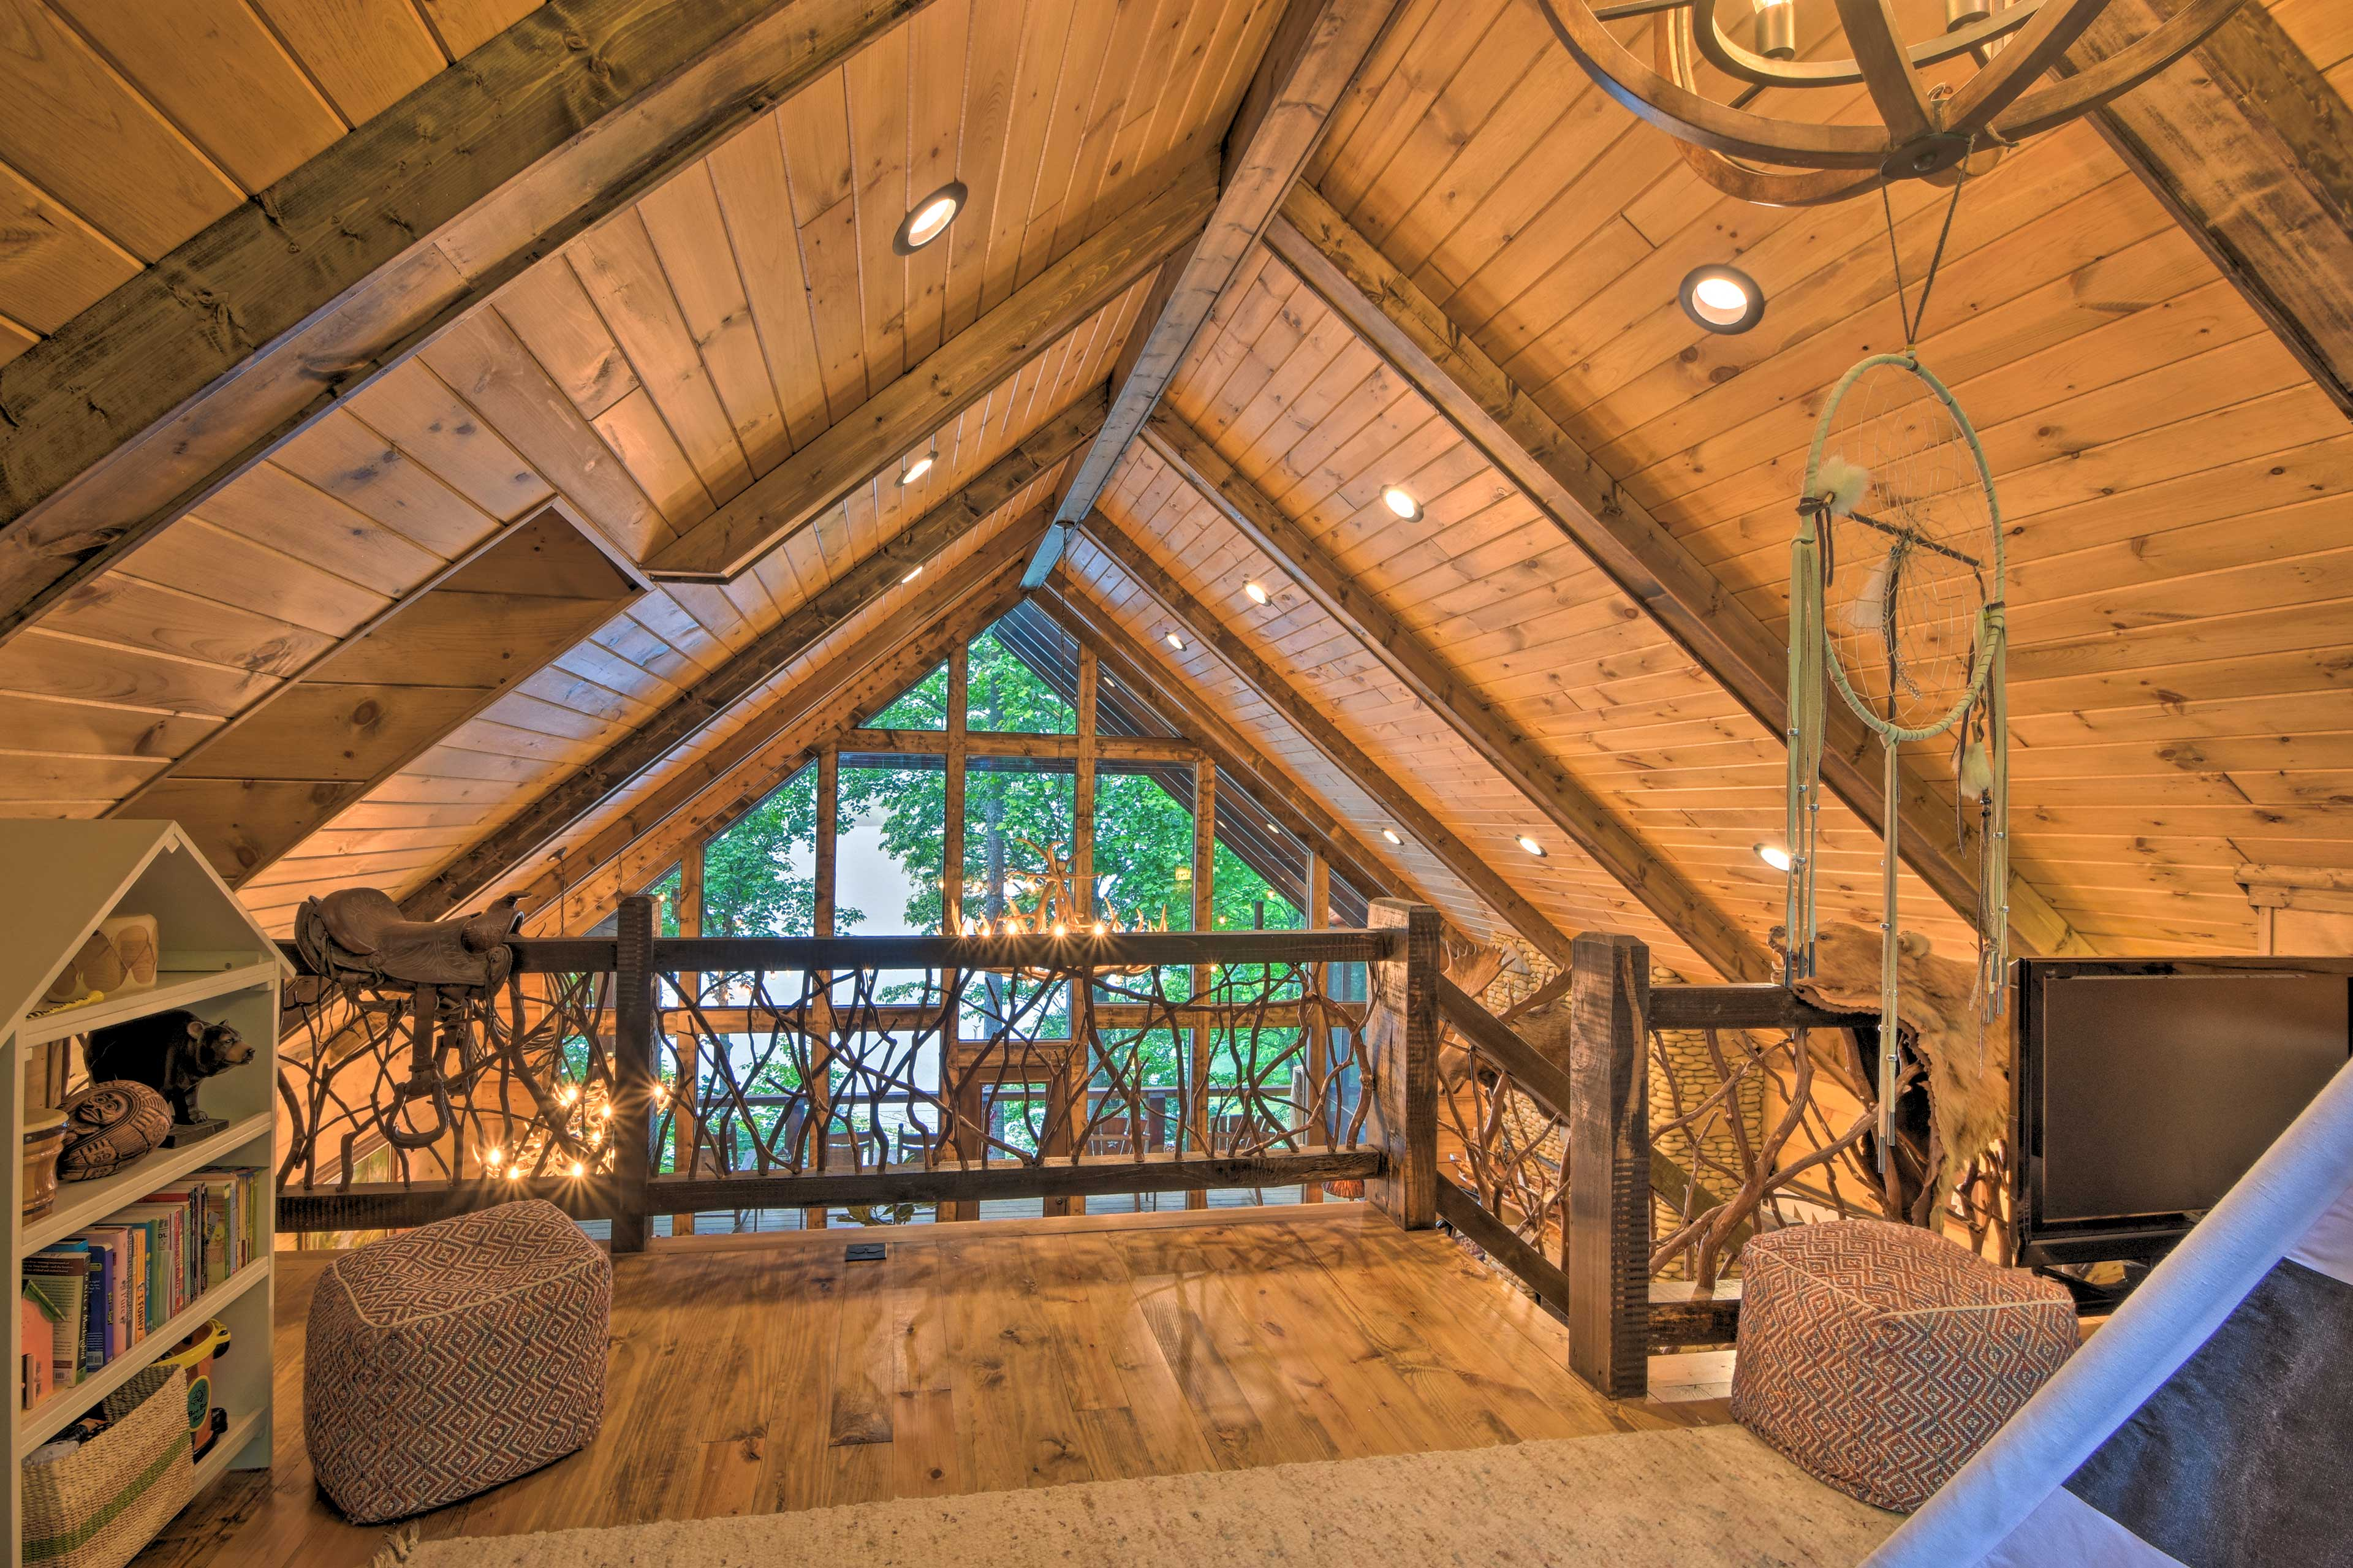 Head upstairs to relax in the loft.